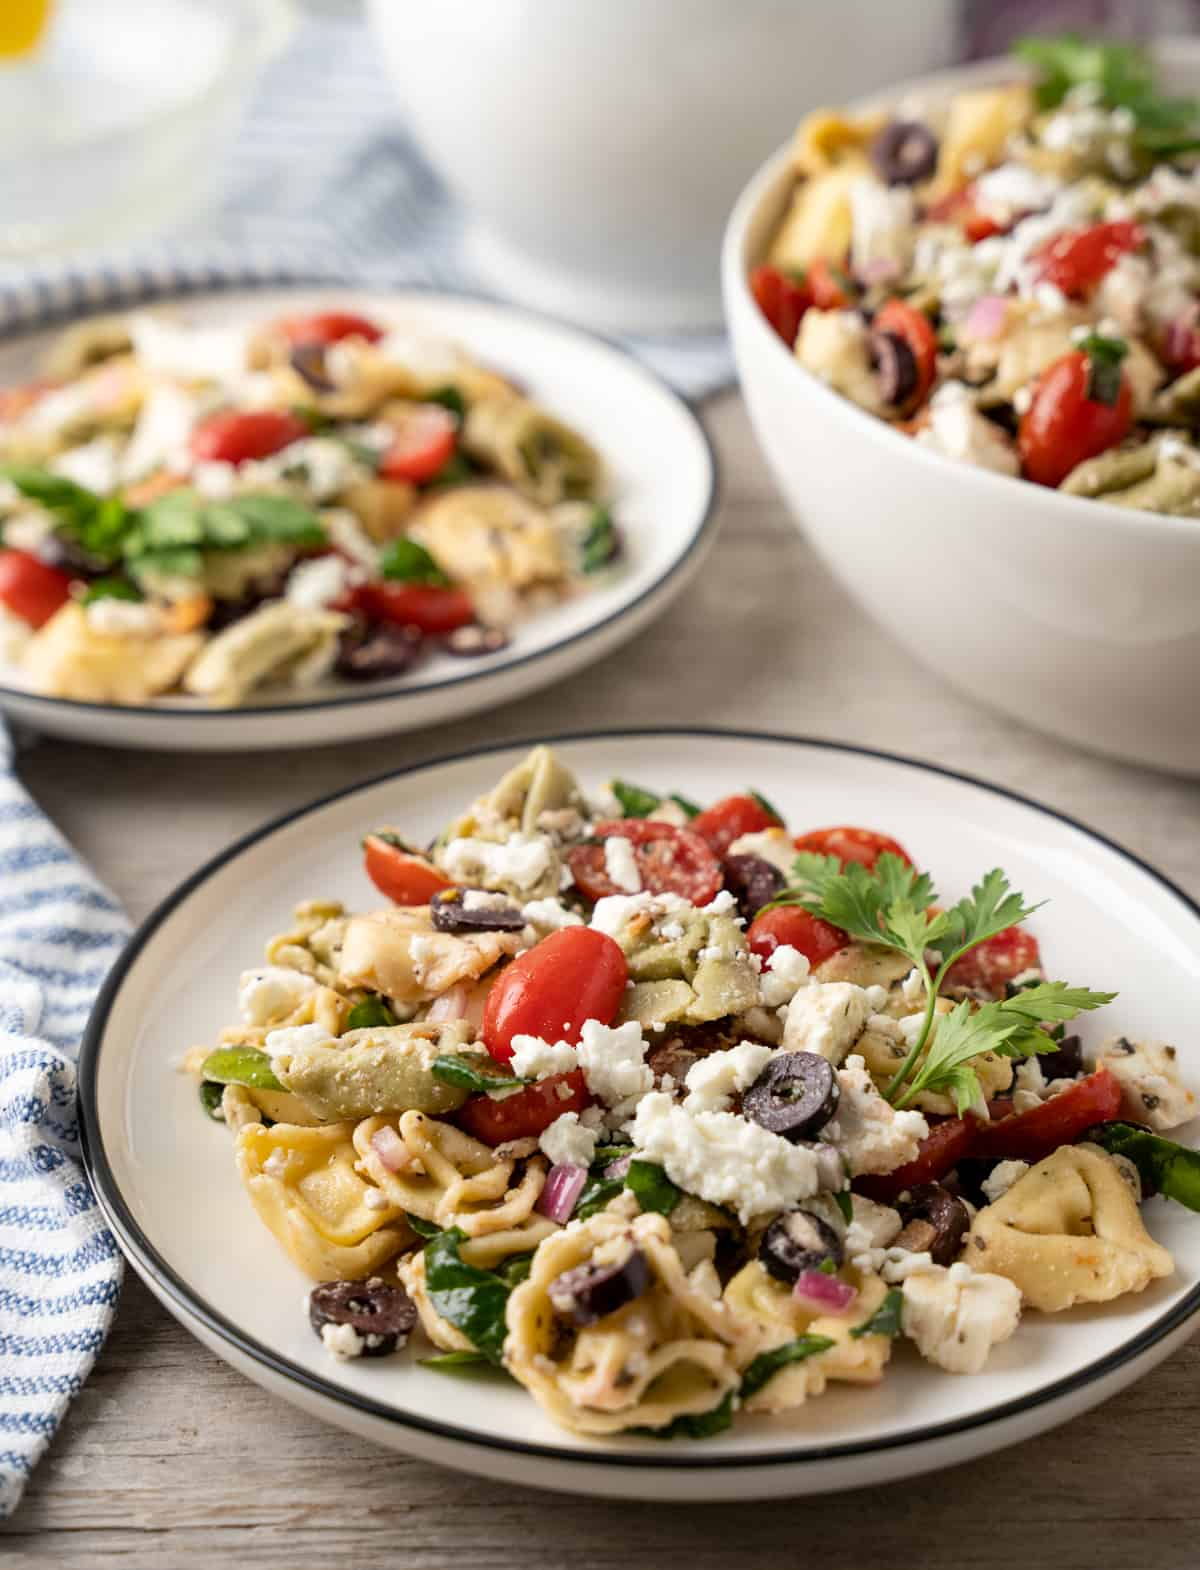 Two white plates with pasta salad on them with striped linen